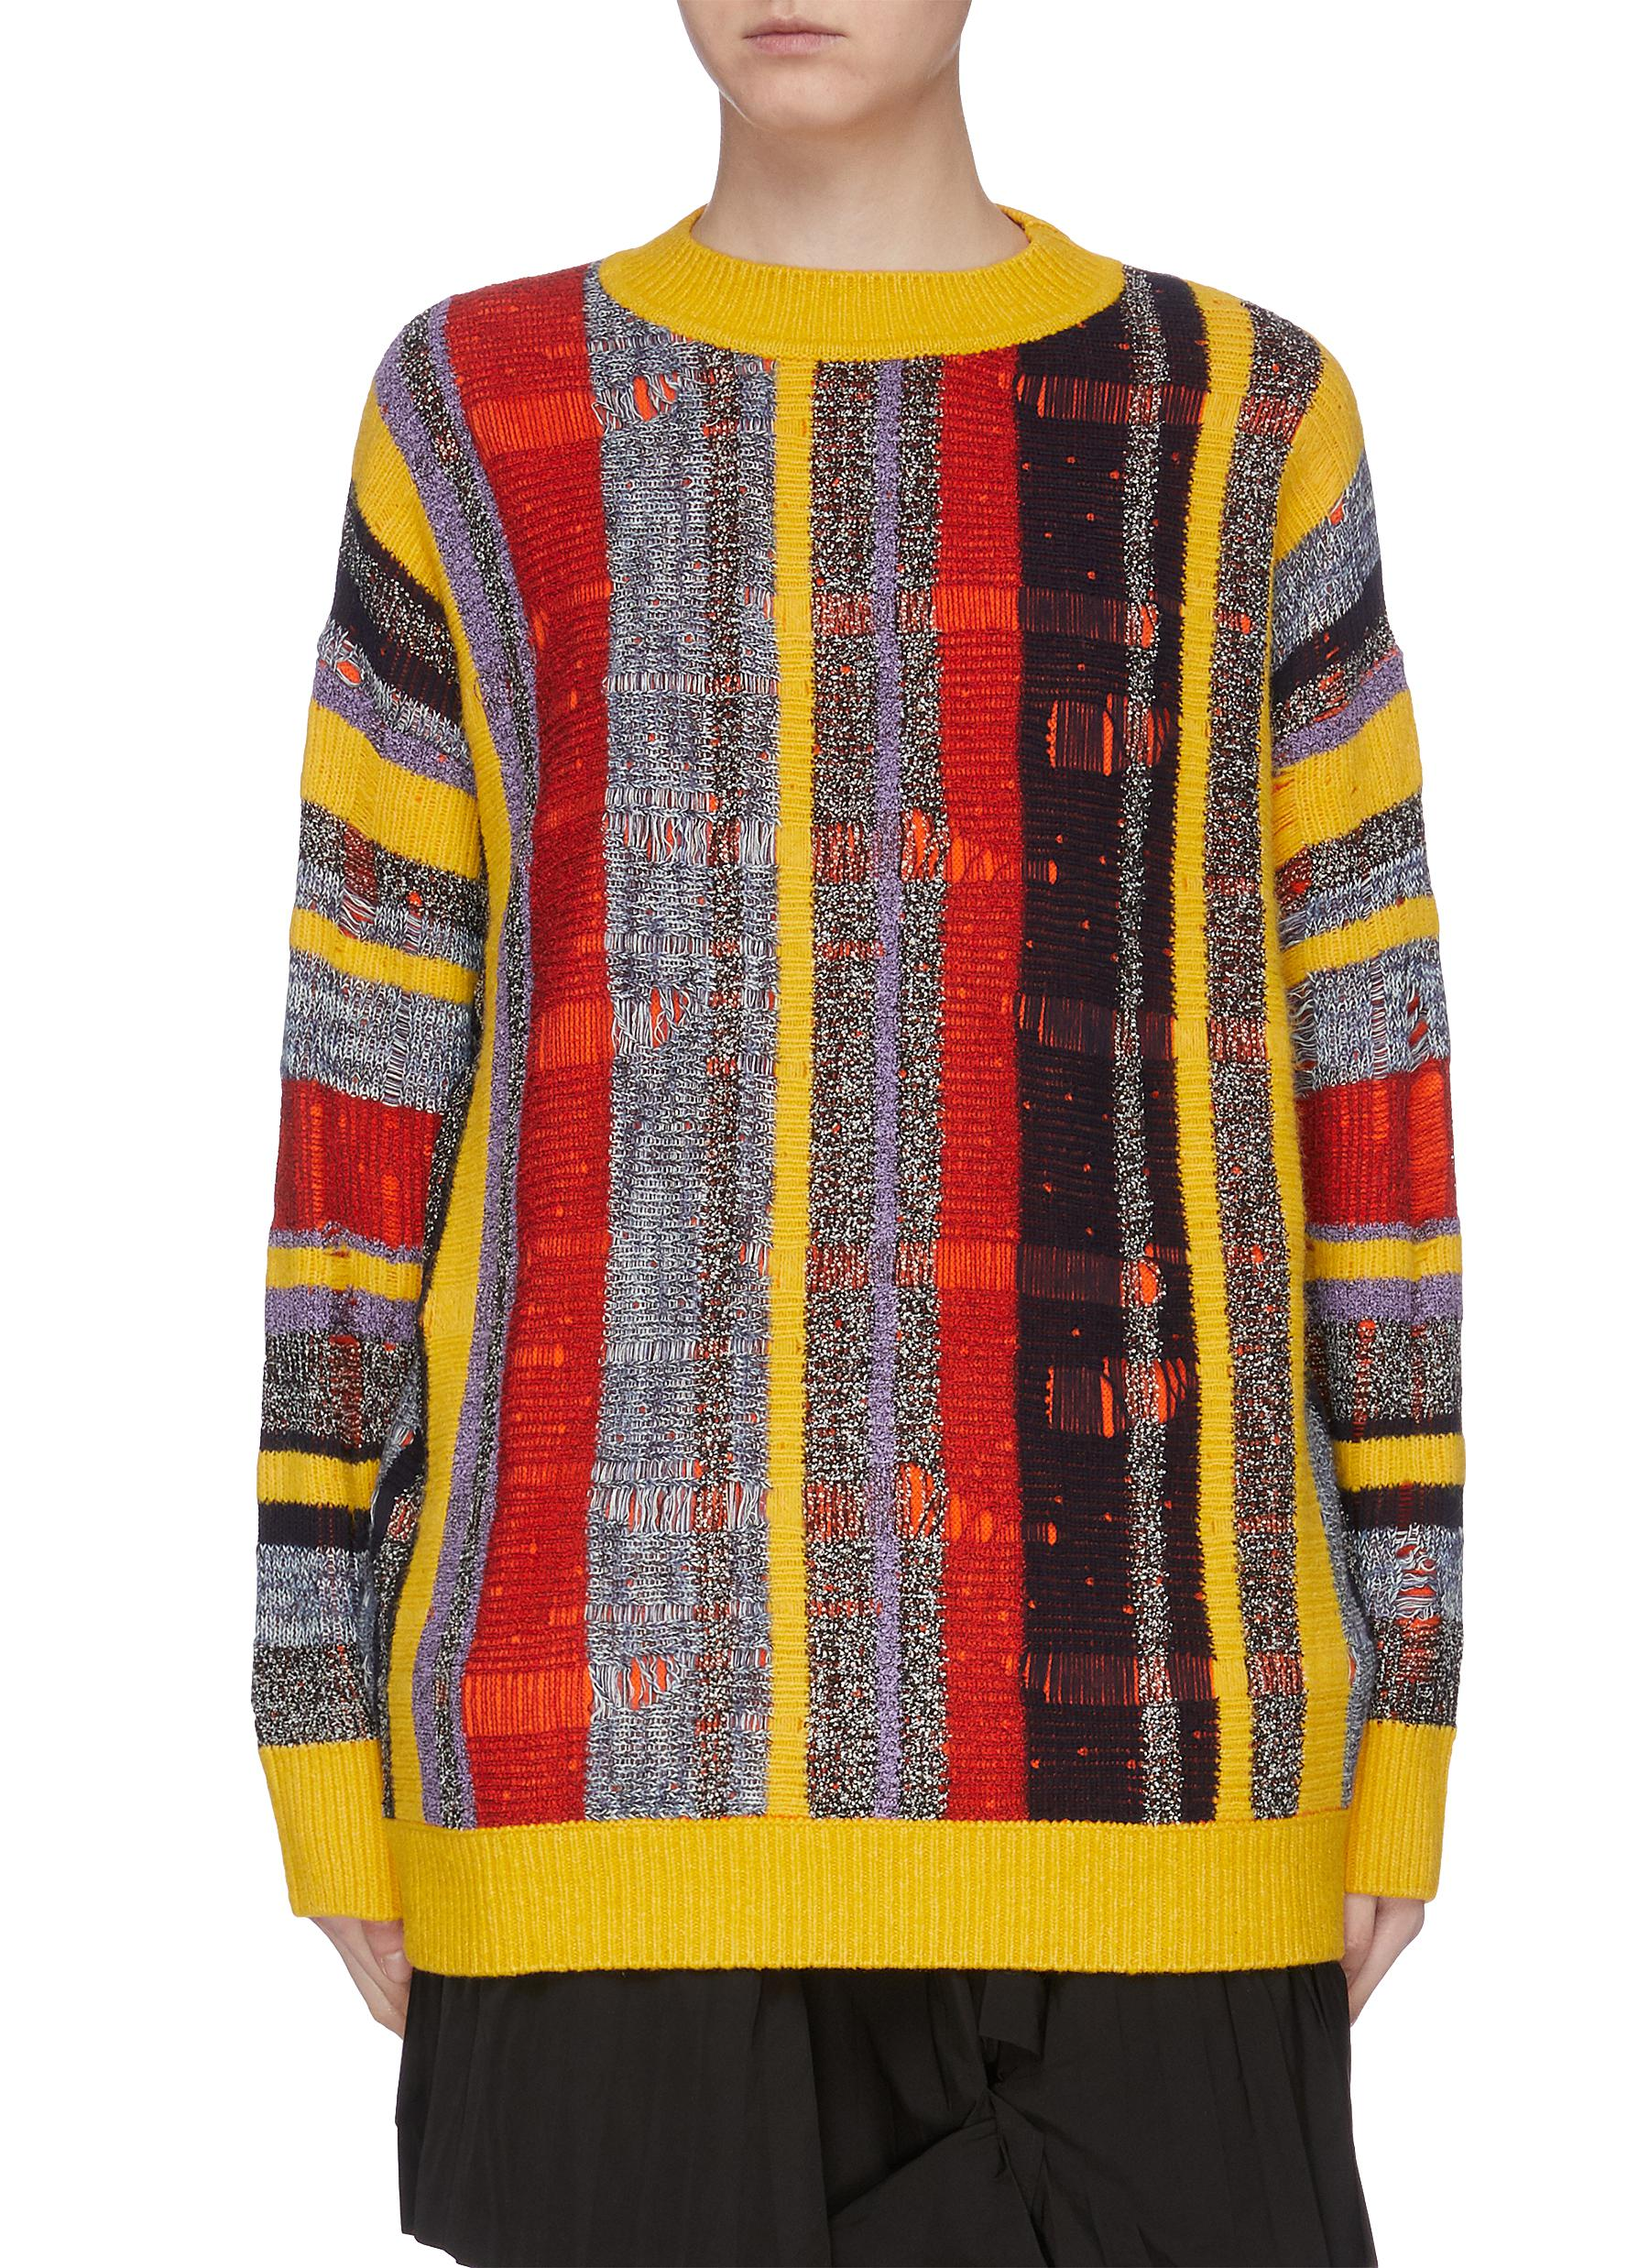 Abstract check intarsia sweater by Angel Chen